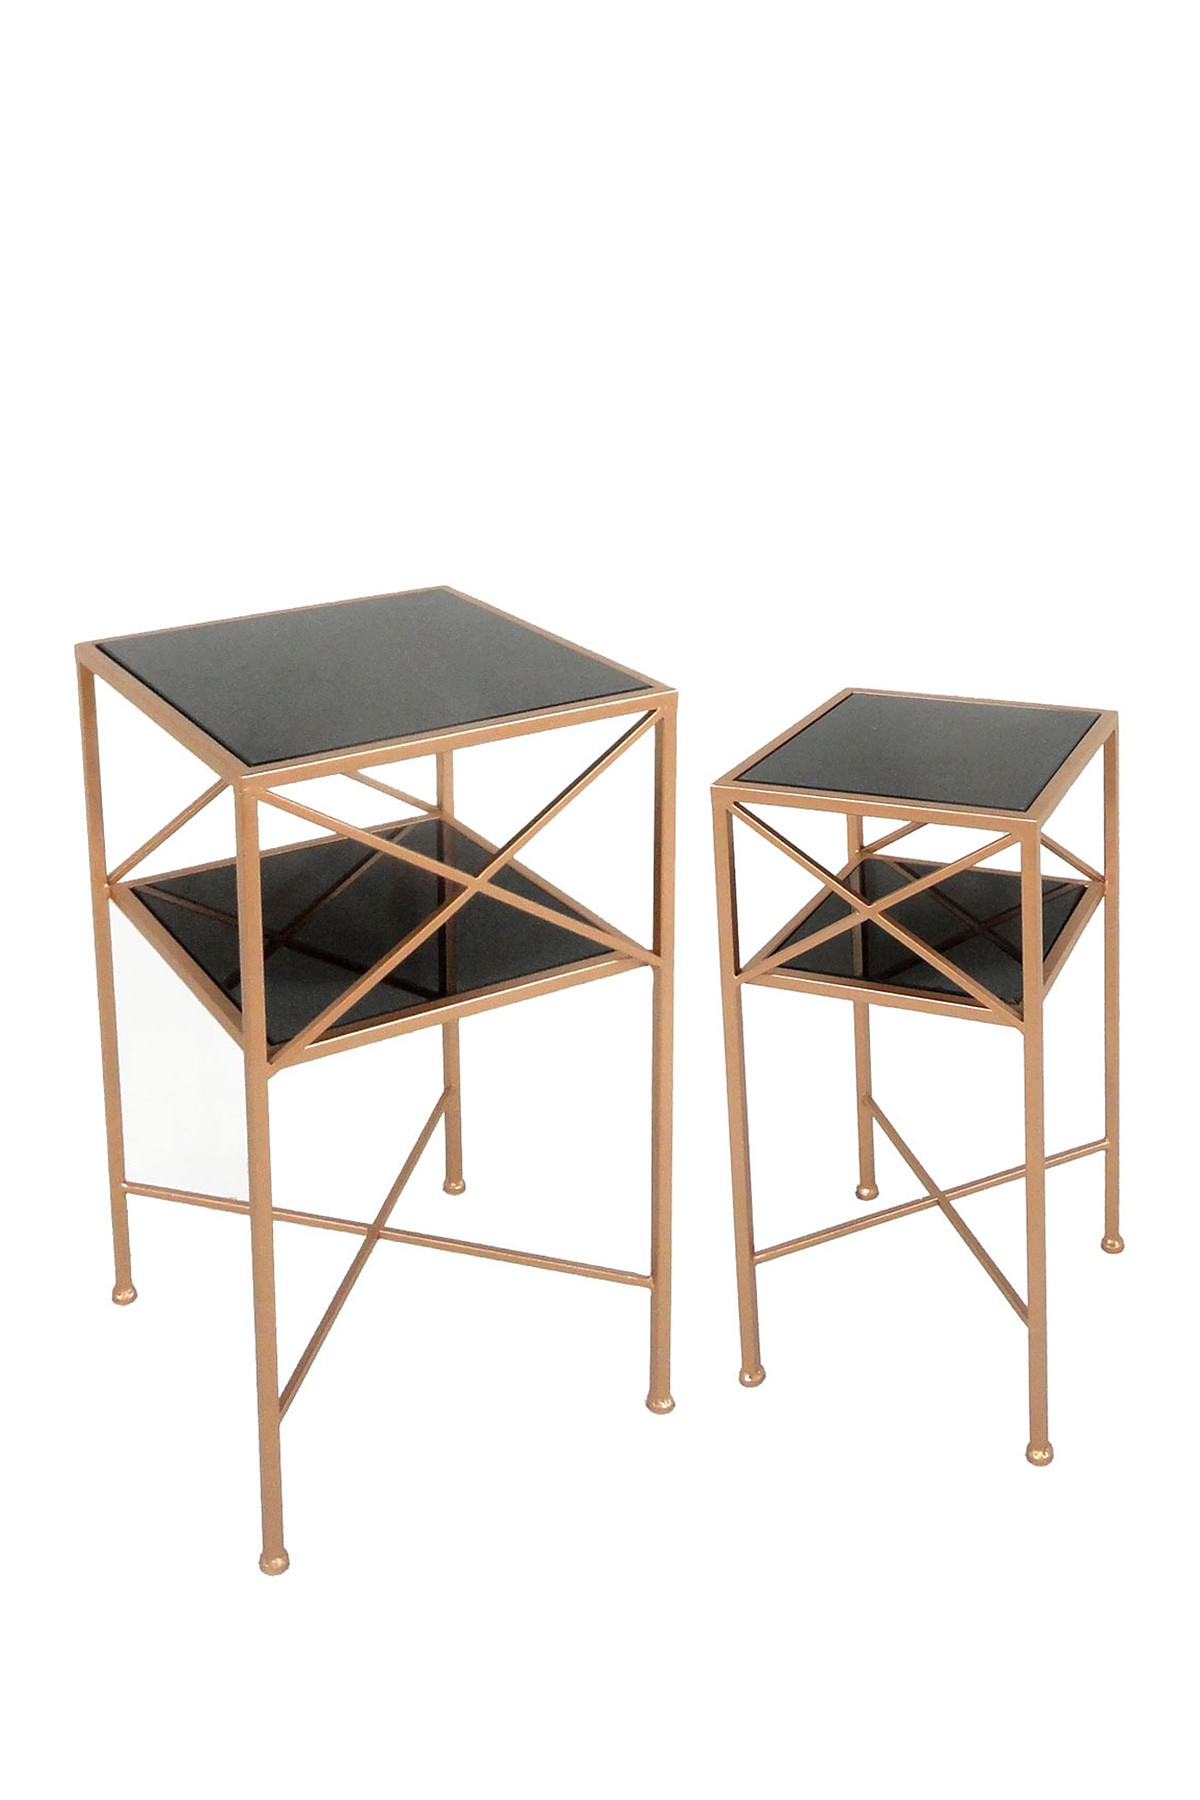 sagebrook home copper black metal mirror accent tables set mirrored table target circular threshold windham trestle bench legs bedside galvanized side dinner placemats tiffany